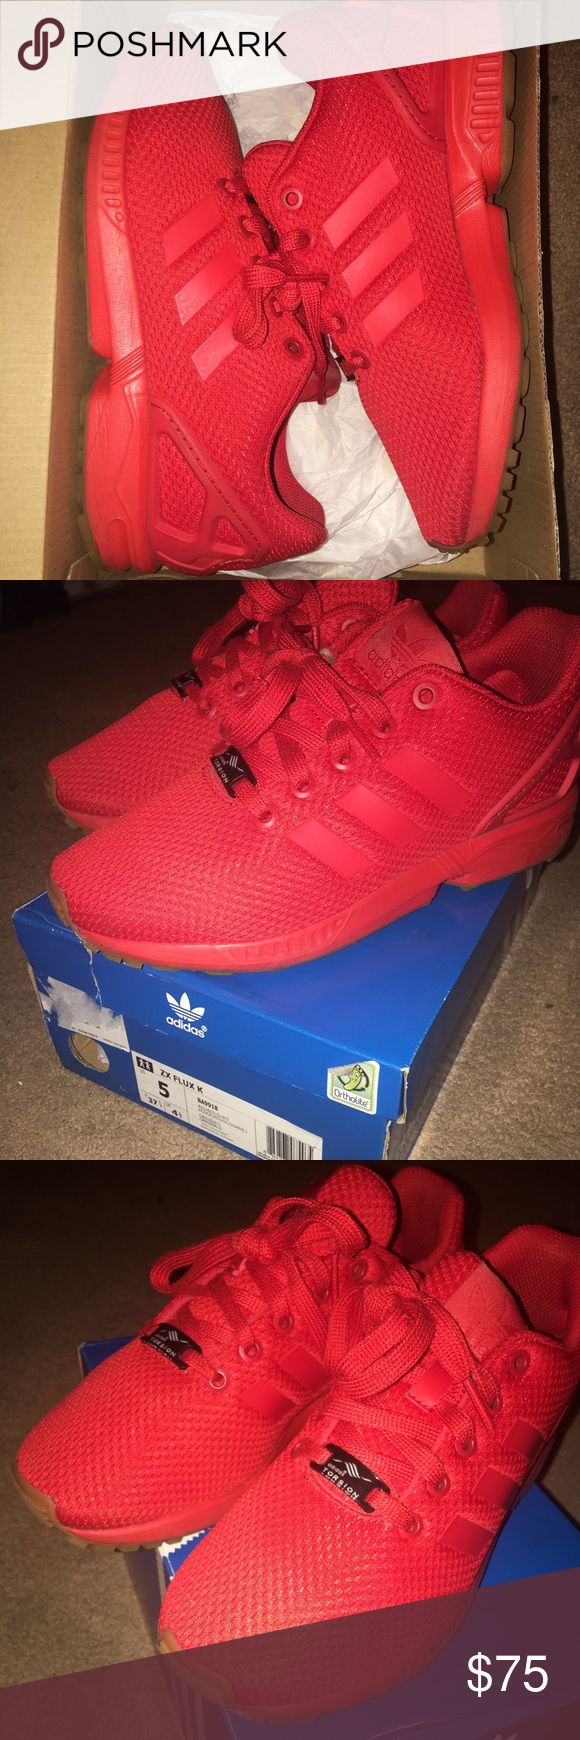 Adidas All red adidas ZX flux. Size 5 in kids, 7 in women. Condition:9 no scuffs or marks. Really comfy shoes. Comes with the original box.No trades. adidas Shoes Sneakers